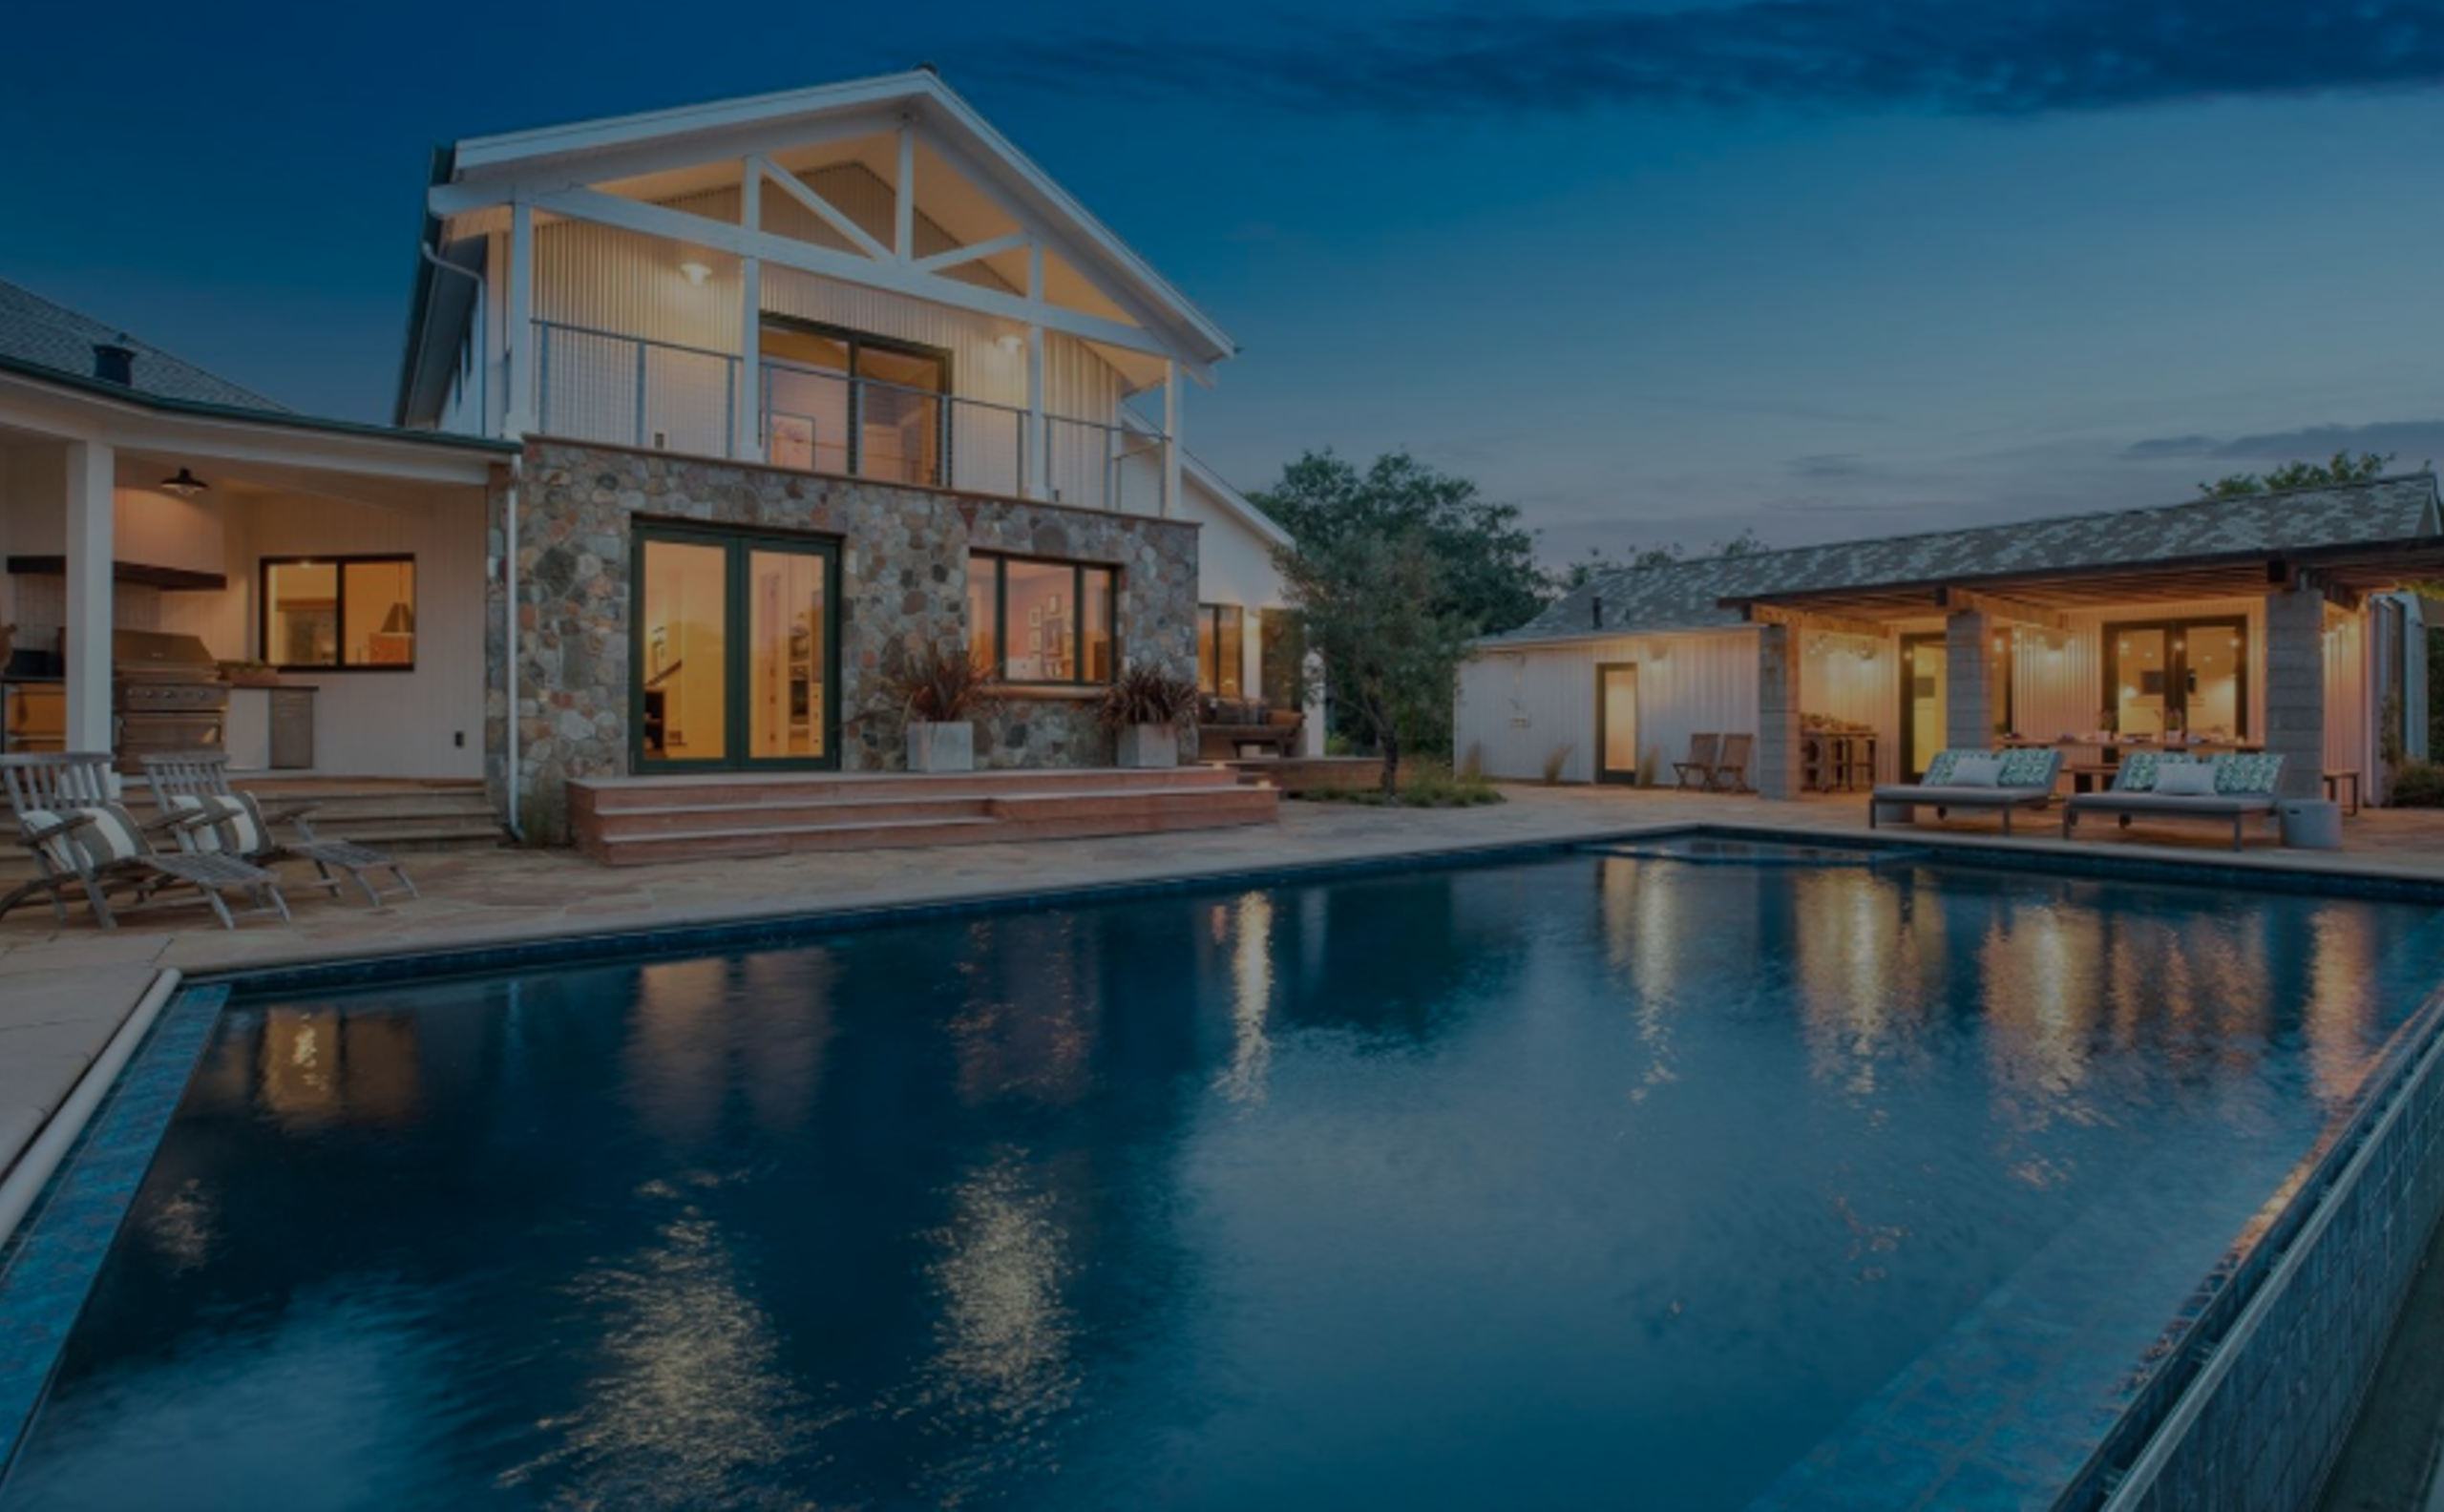 The Houses That Sold In Dry Creek Valley in 2019